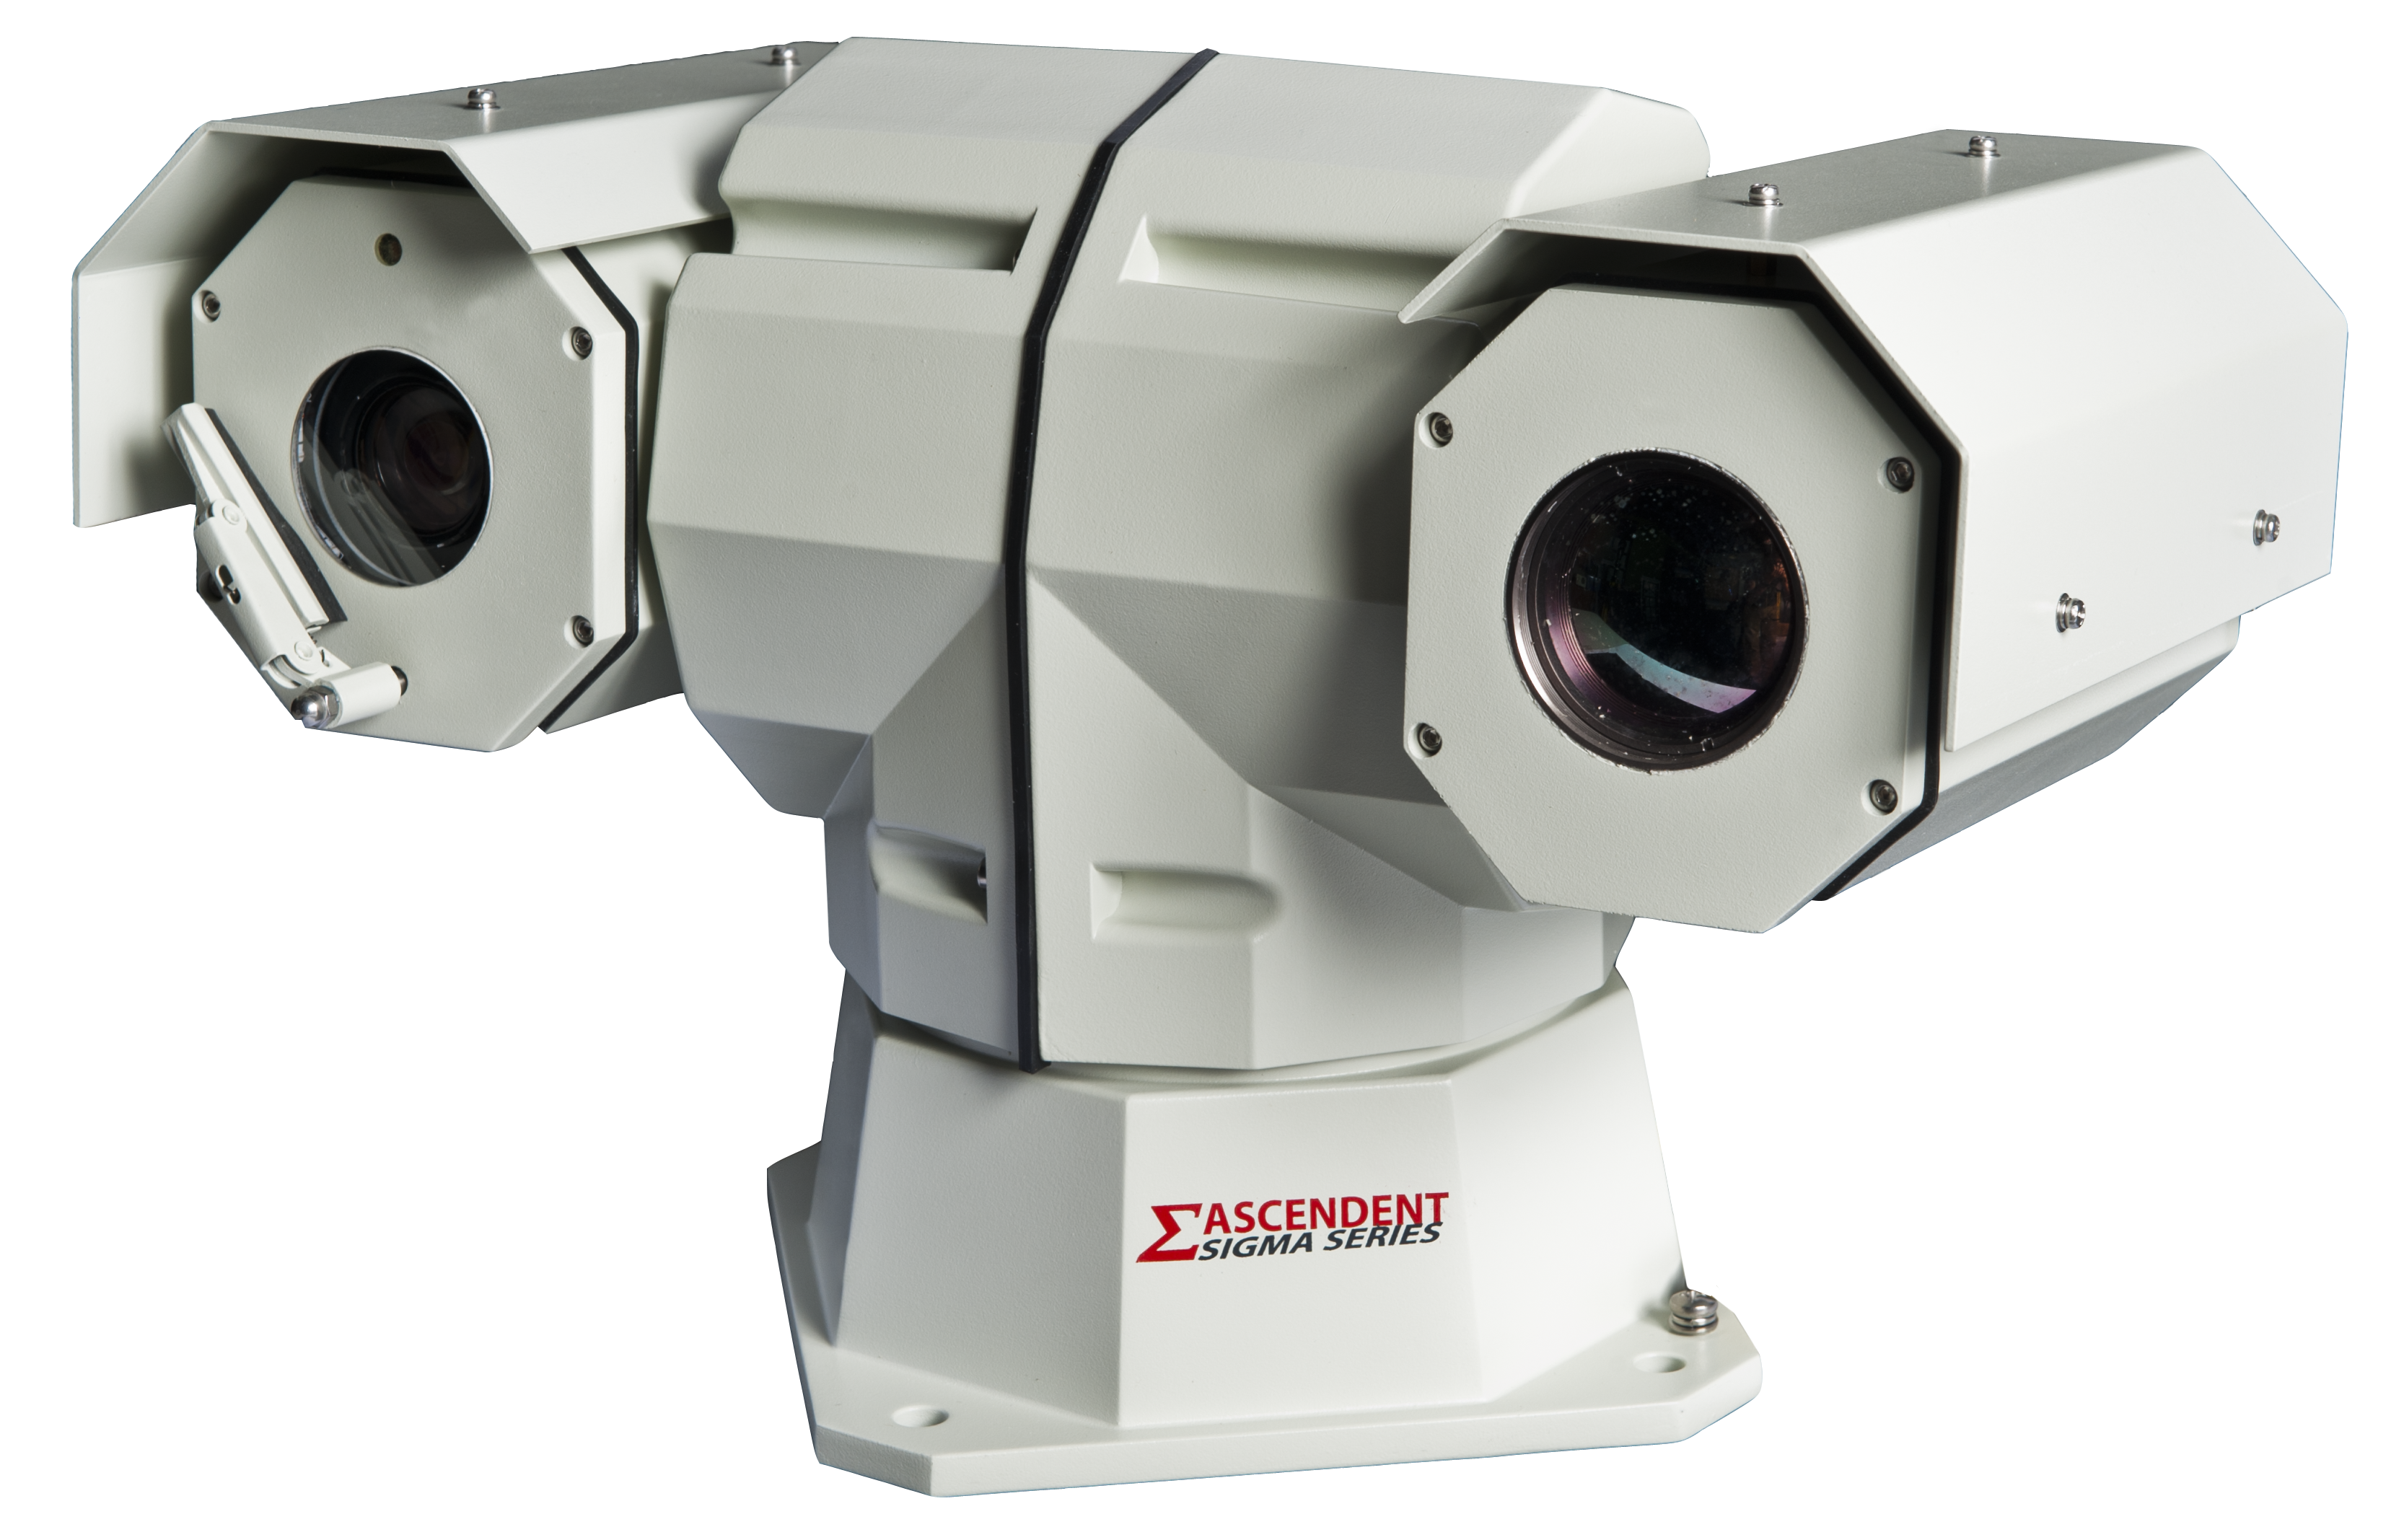 Rugged Thermal Optical Security Ptz Camera High End Professional Video Surveillance Equipment Pinterest